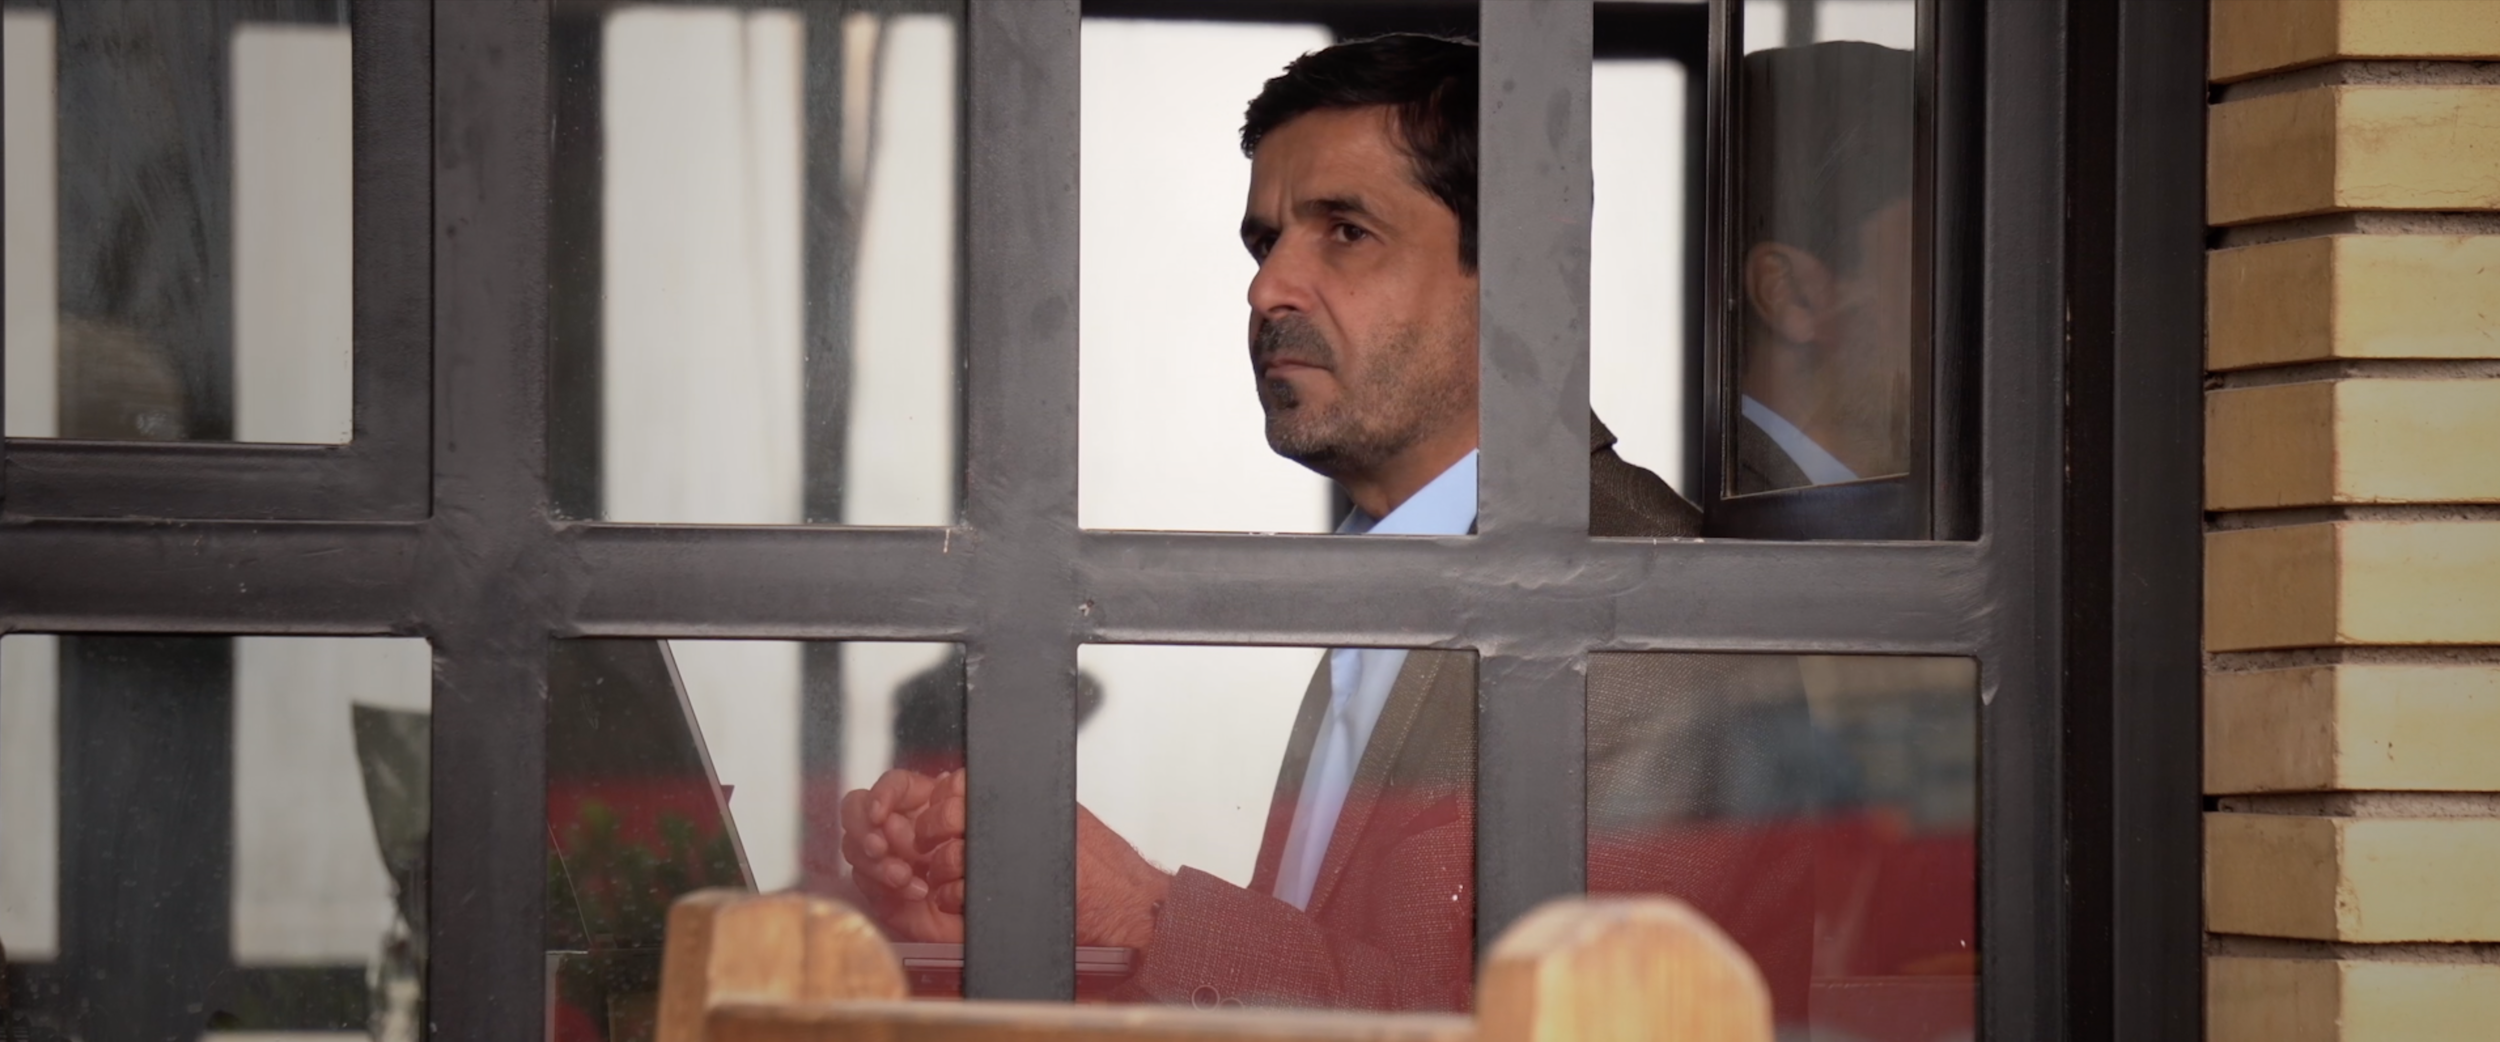 Journalist Ali Maula looks in the distance from restaurant window.png